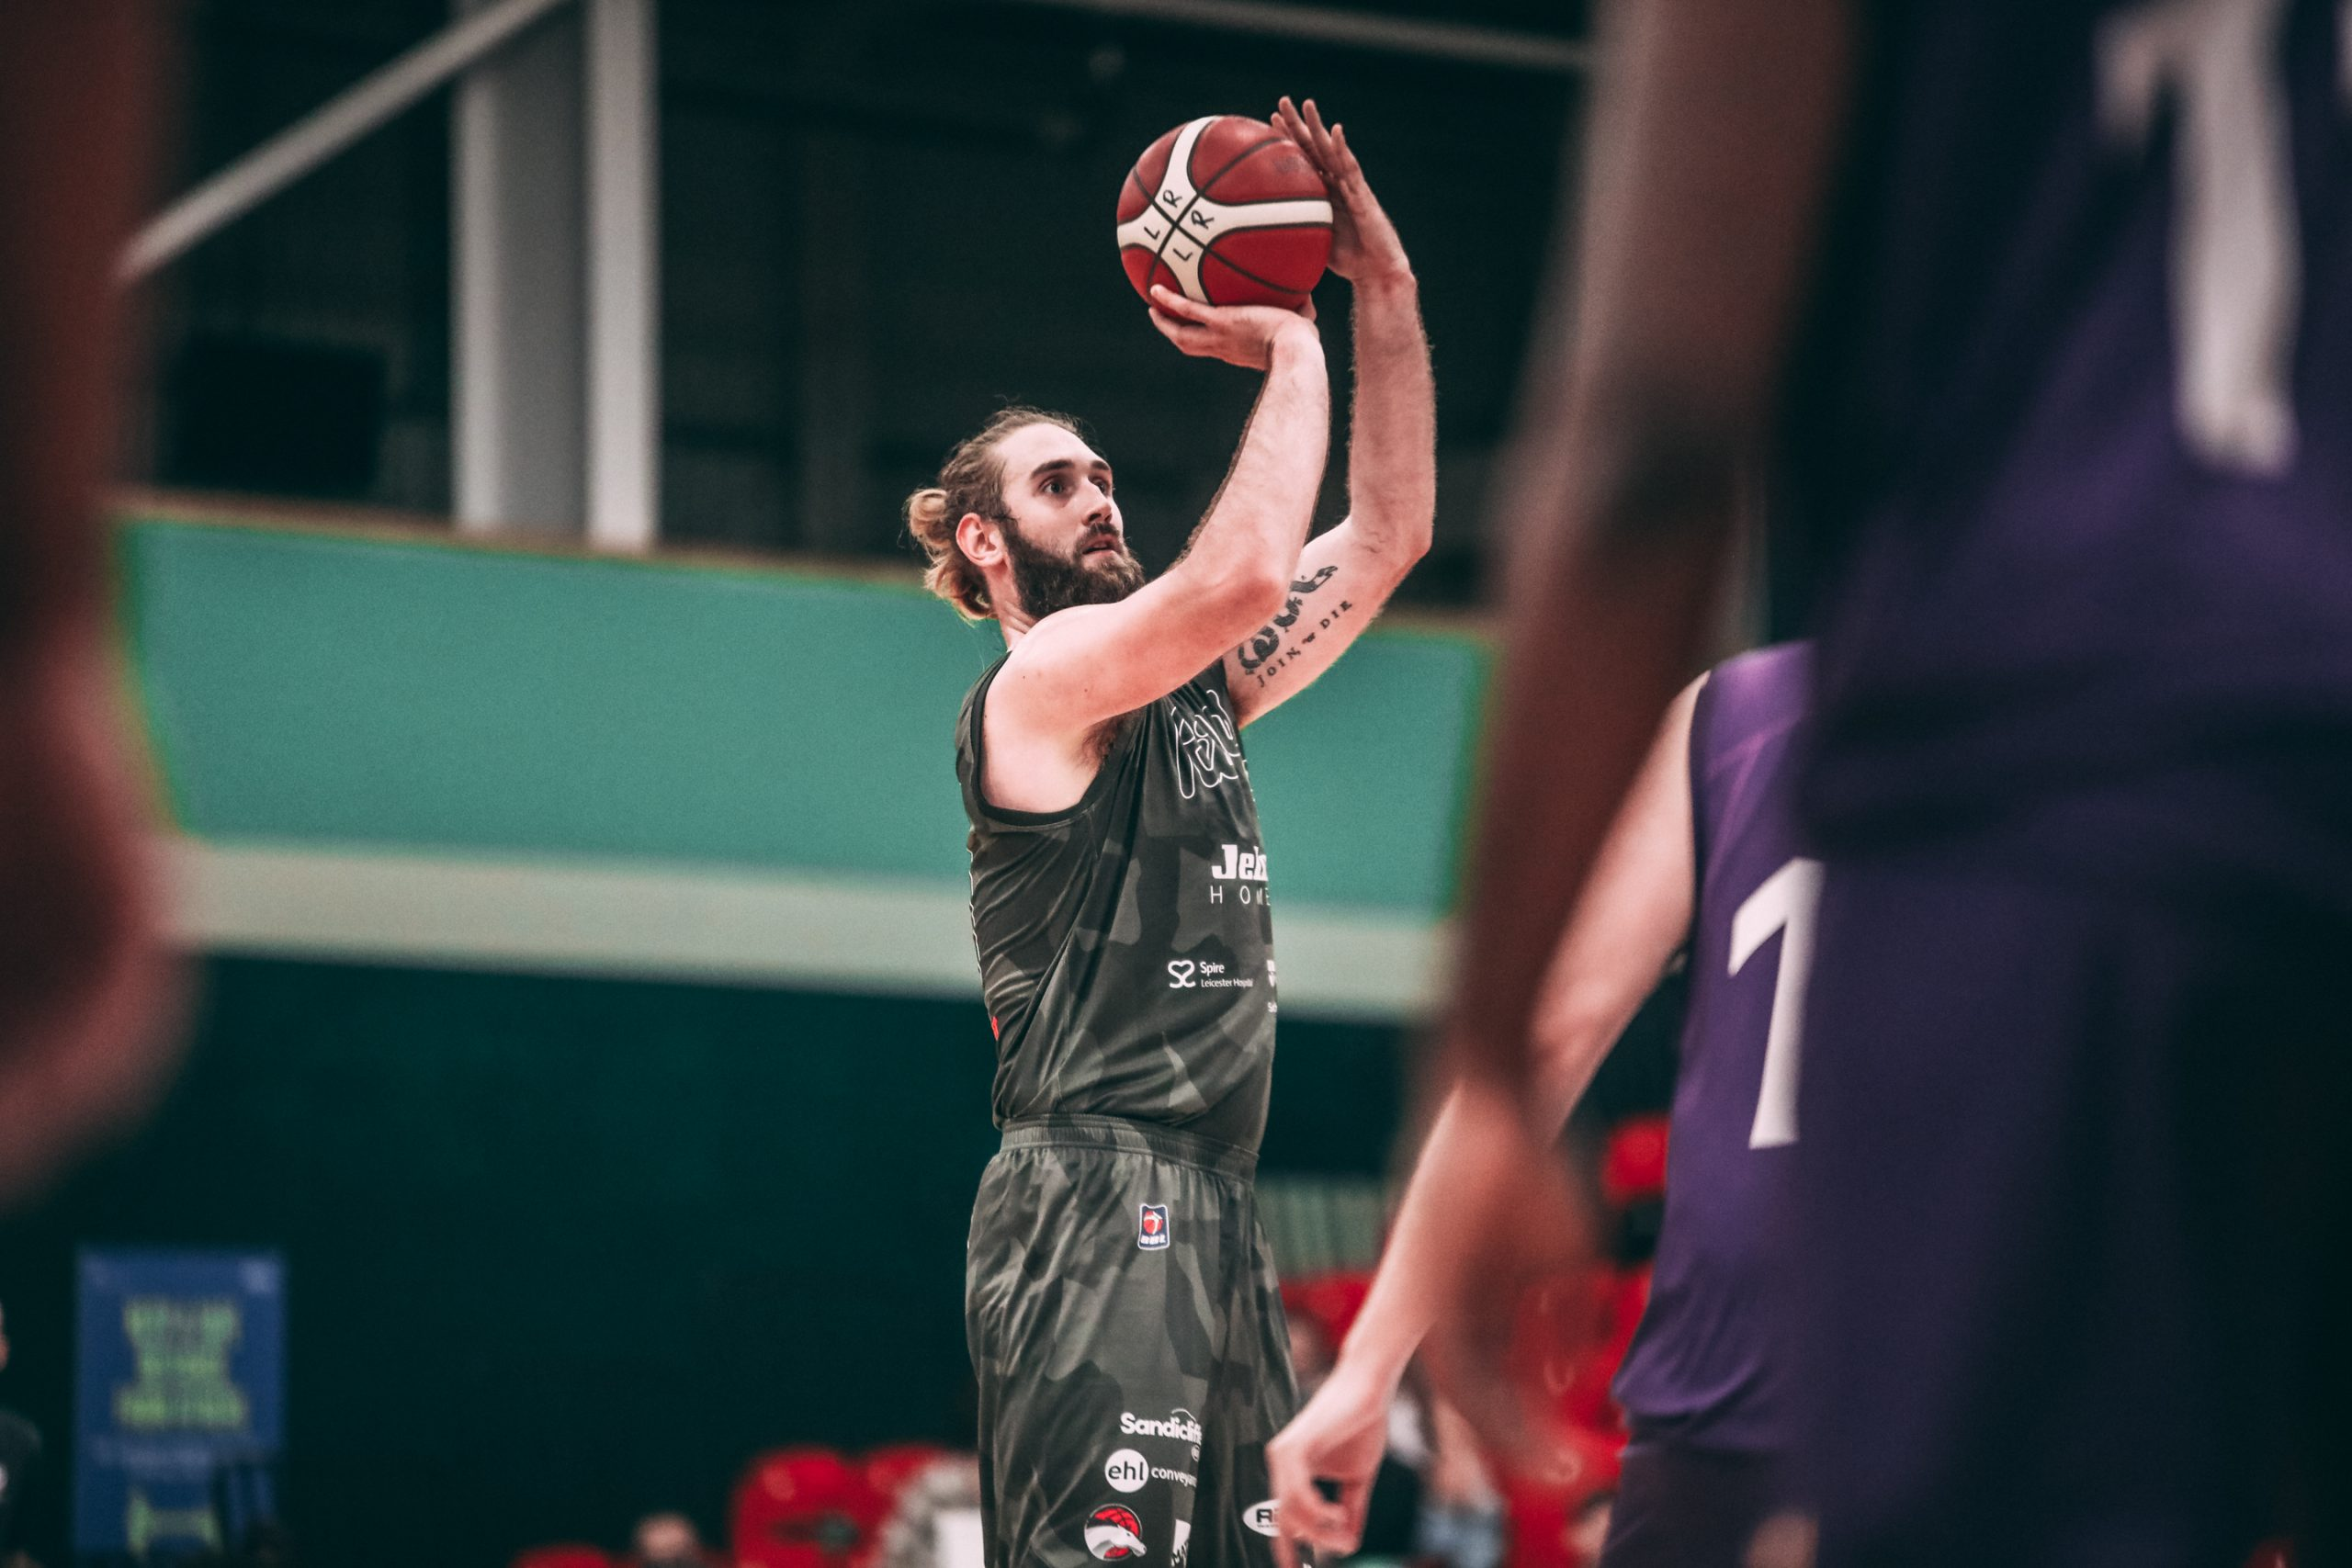 Leicester Riders partner with University of Leicester